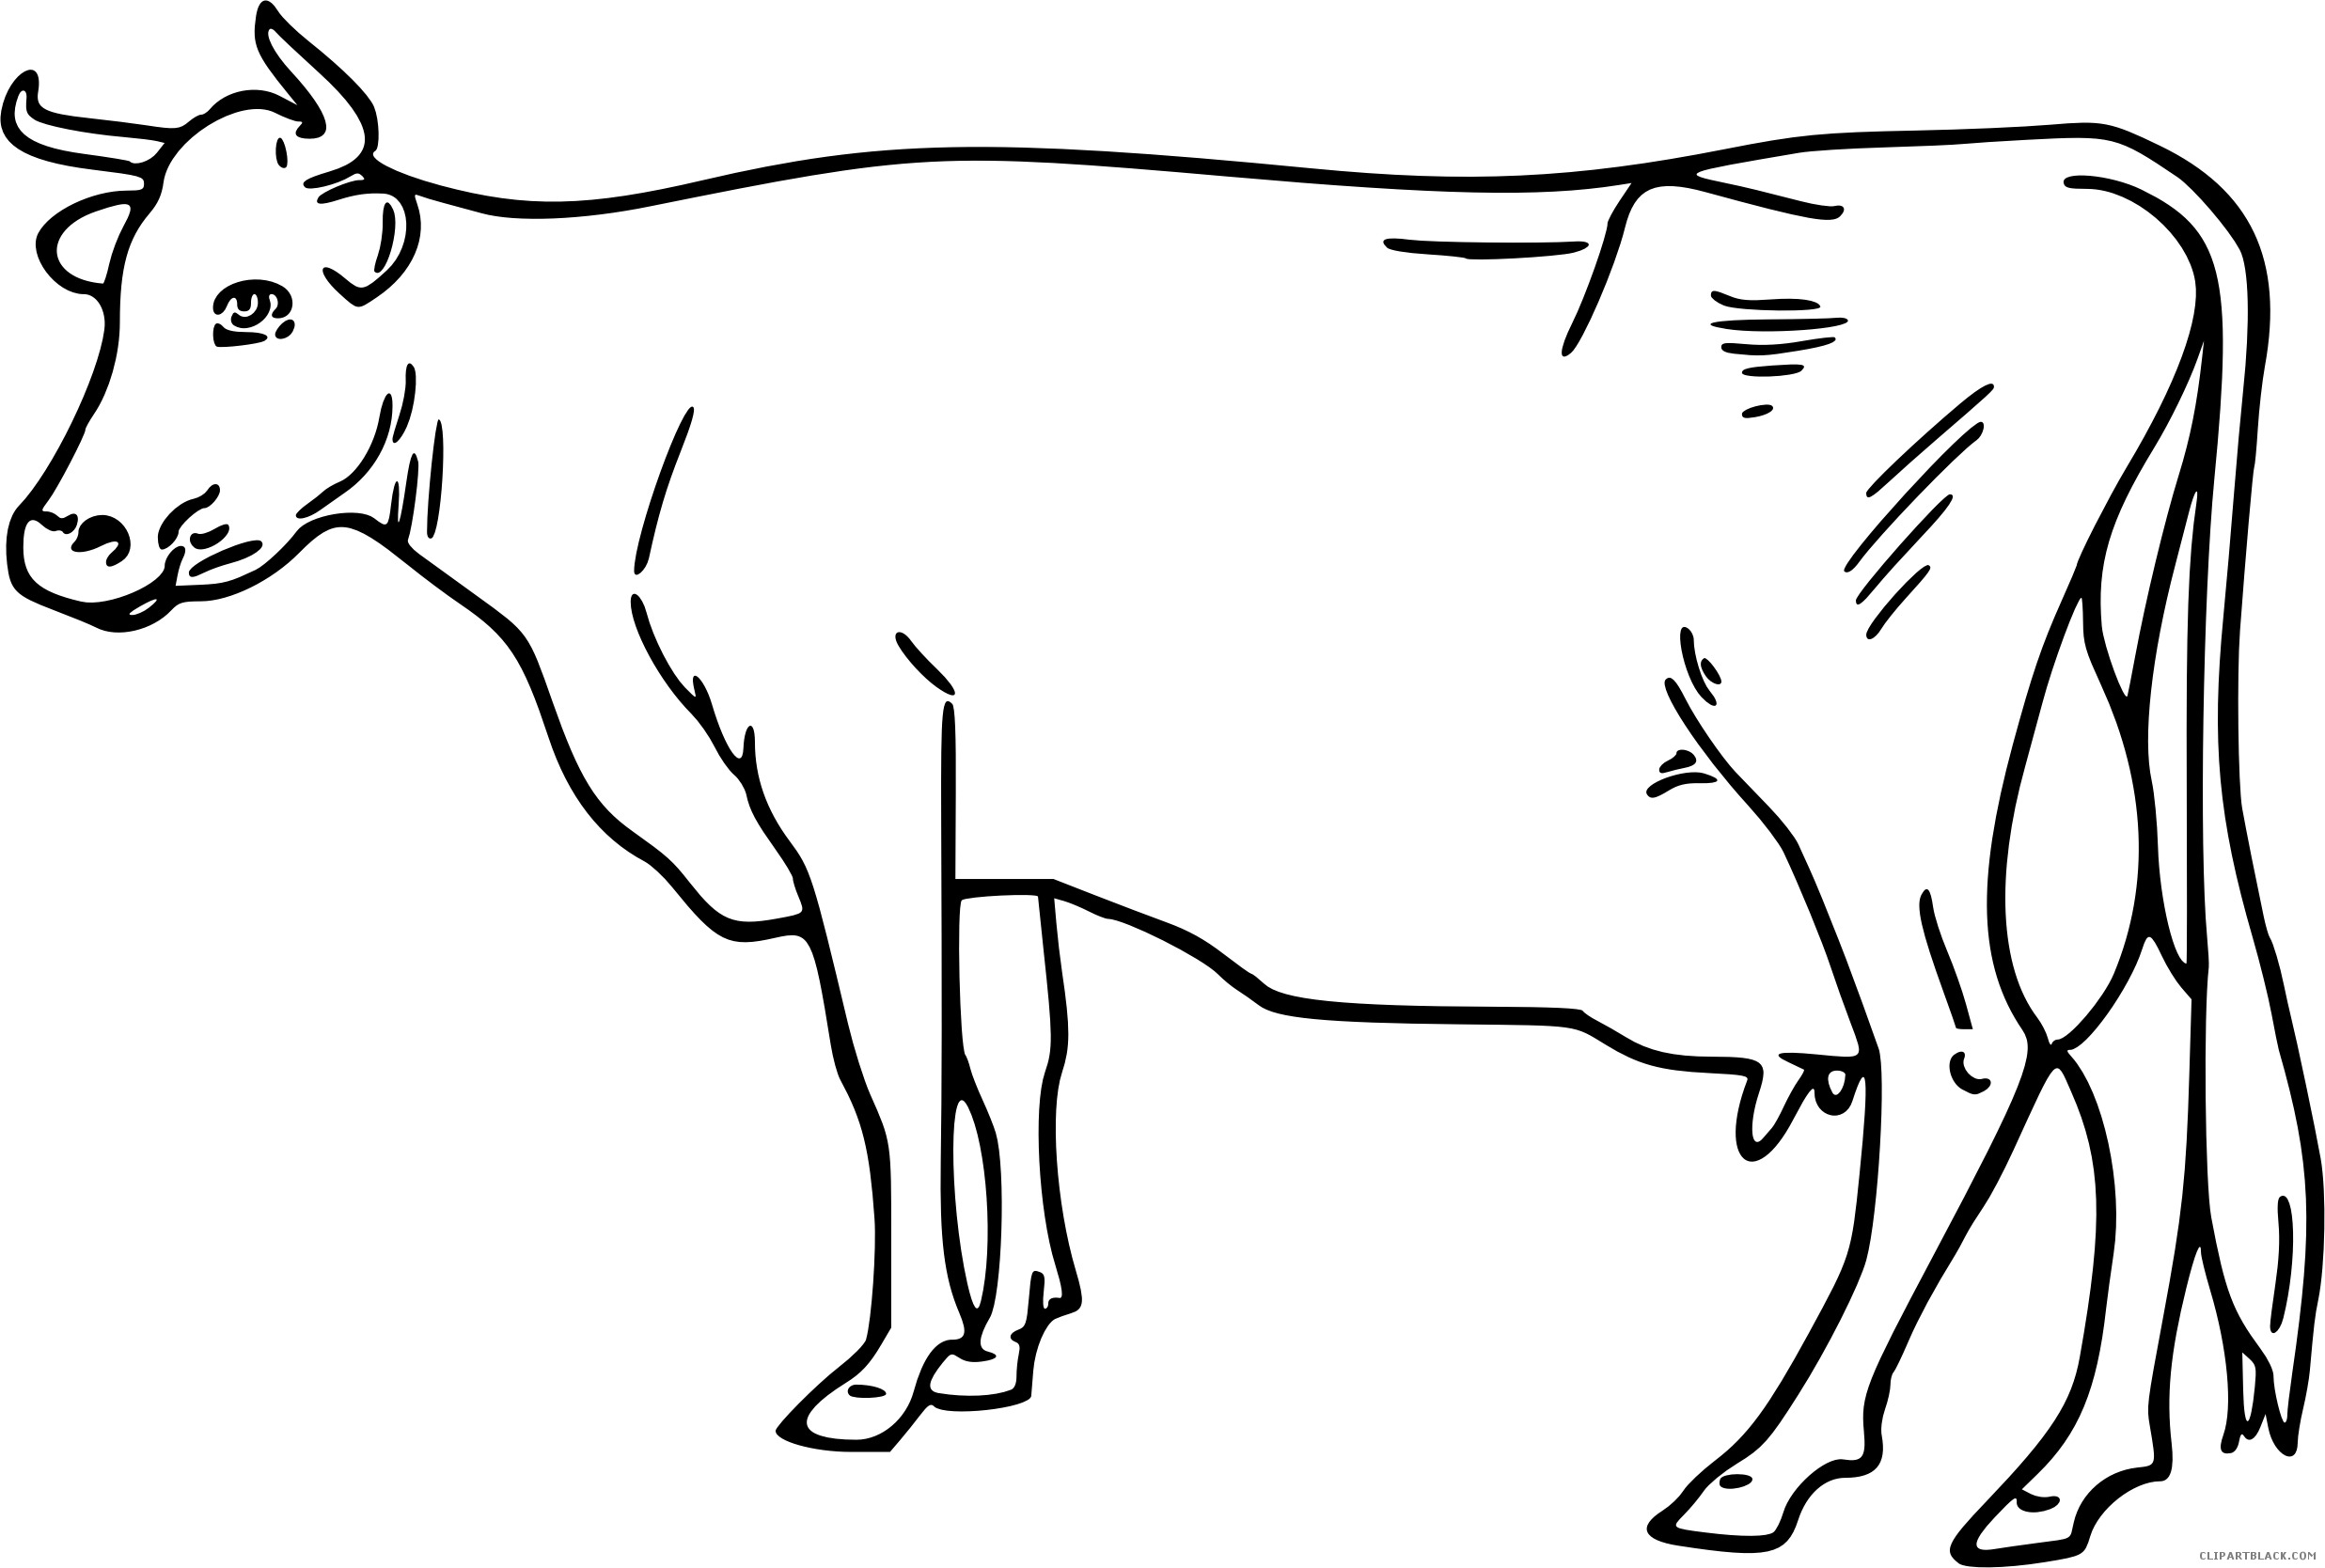 Cows Clipart Outline Cows Outline Transparent Free For